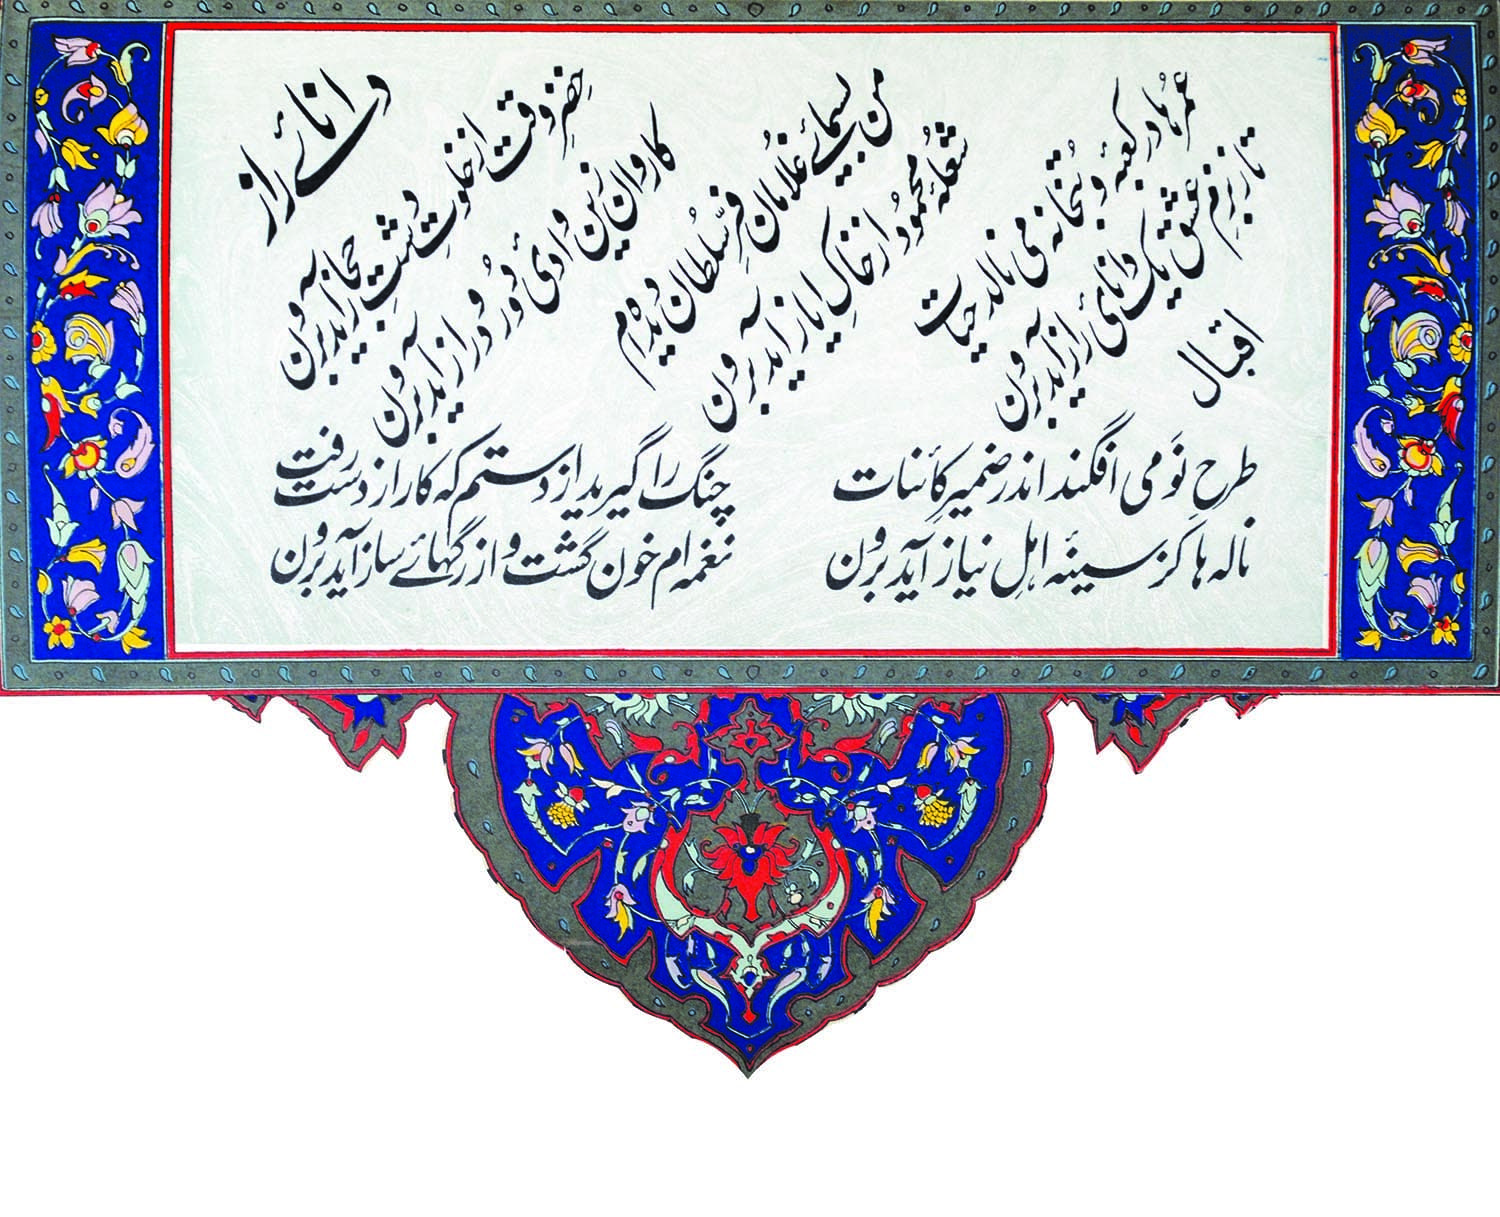 A *Tughra* by Abdur Rahman Chughtai with verses from Allama Iqbal's Dana-i-Raaz calligraphed within it.